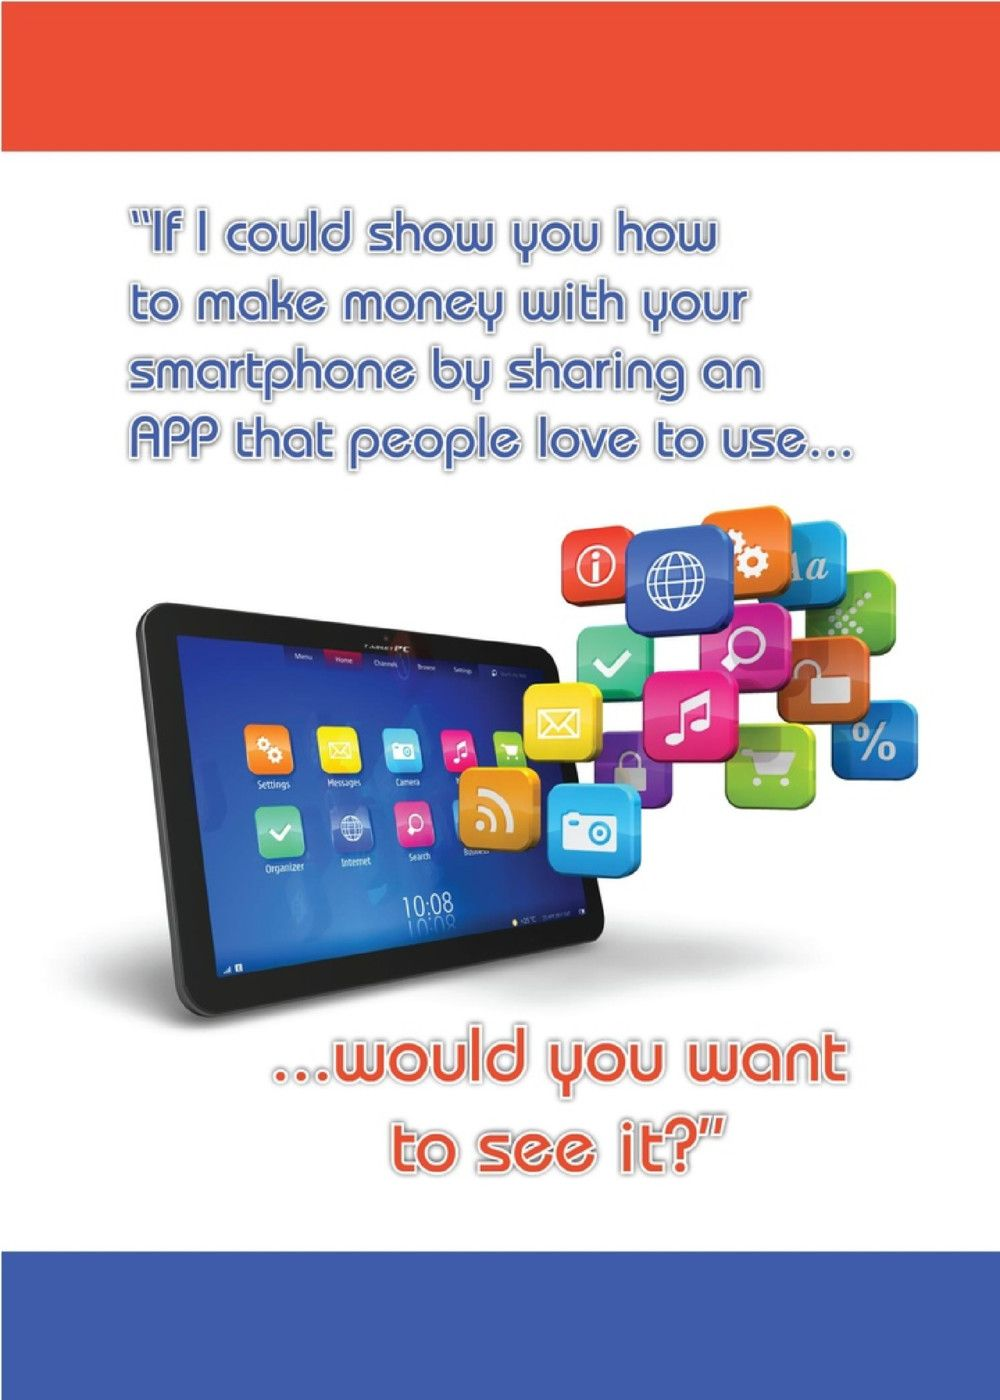 Did You Know That You Can Make Money With Your Smartphone Just By